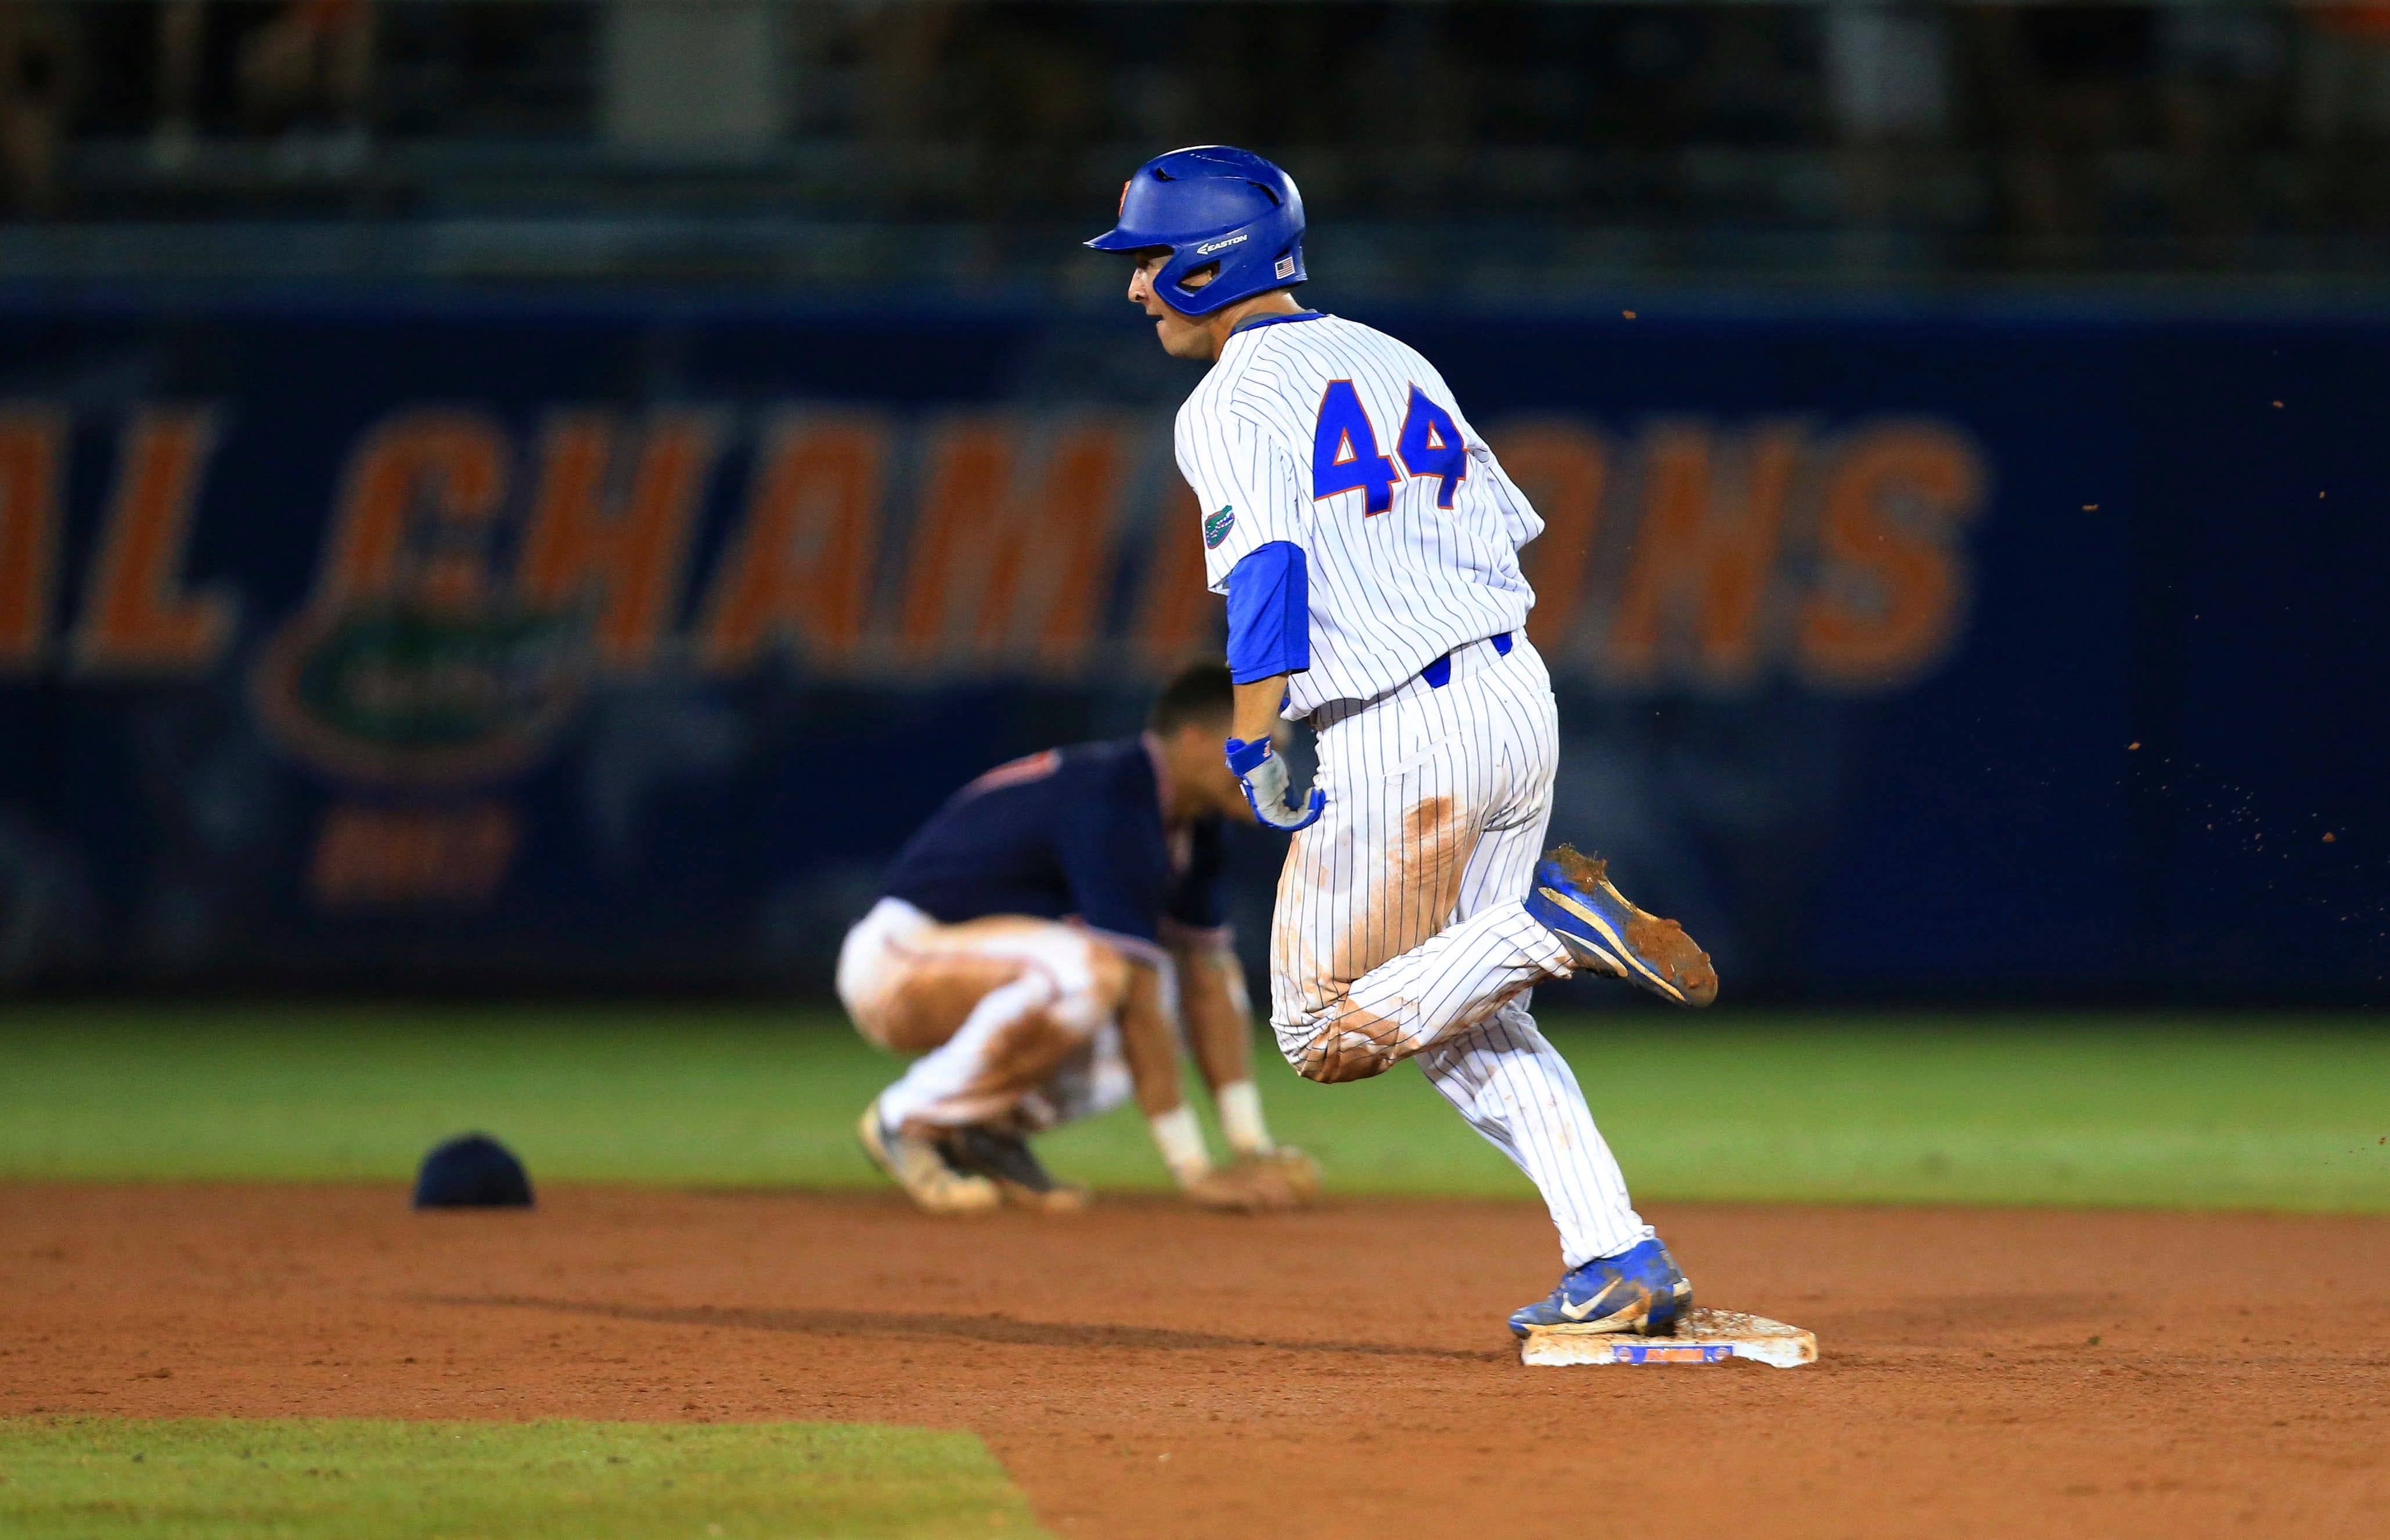 Langworthy's homer off glove lifts Florida back to Omaha